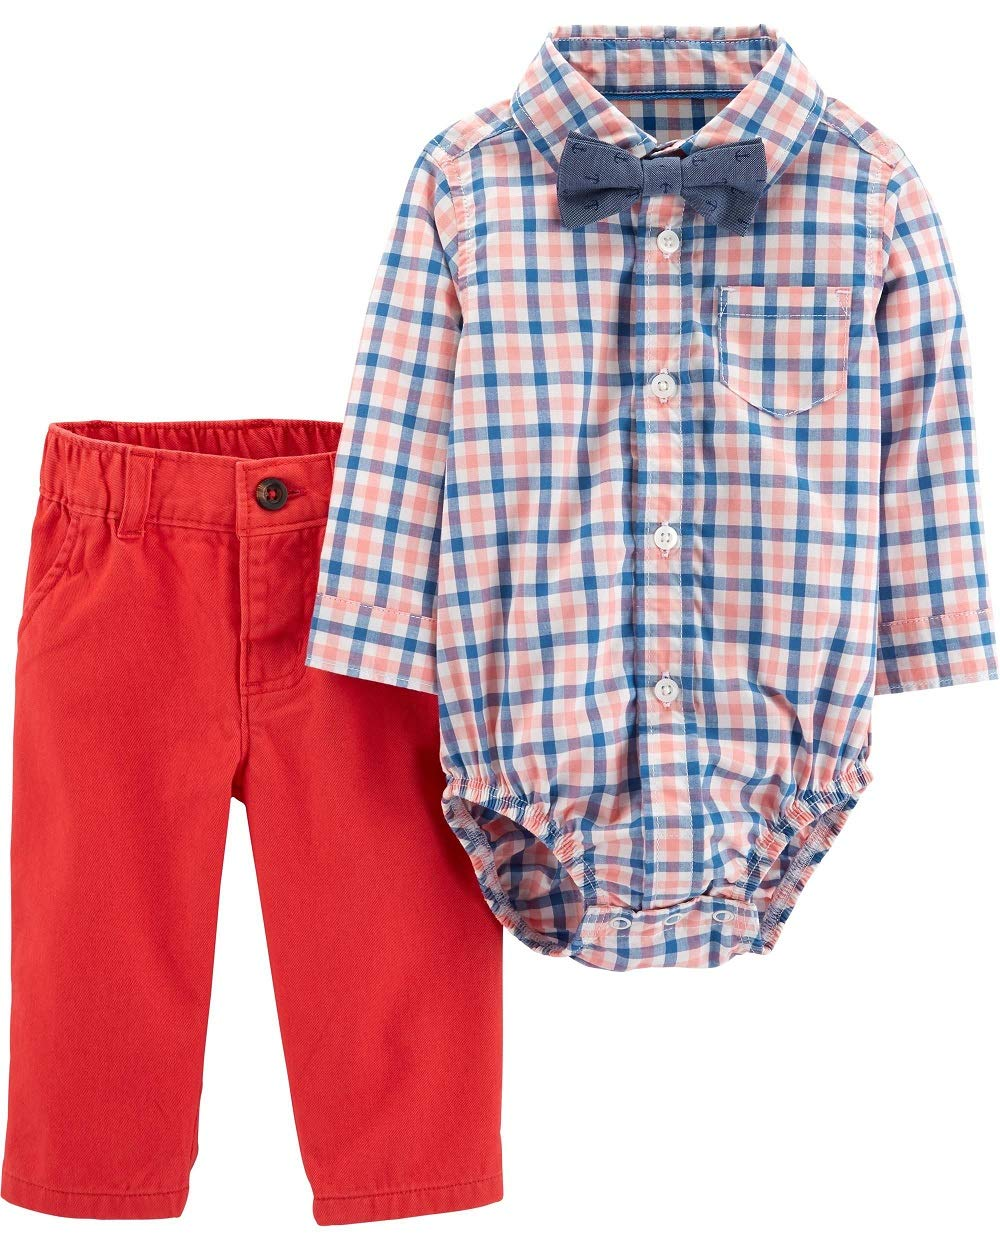 Carter's 3-Piece Dress Me Up Set for Boys Size 24 Months Red Orange by Carter's